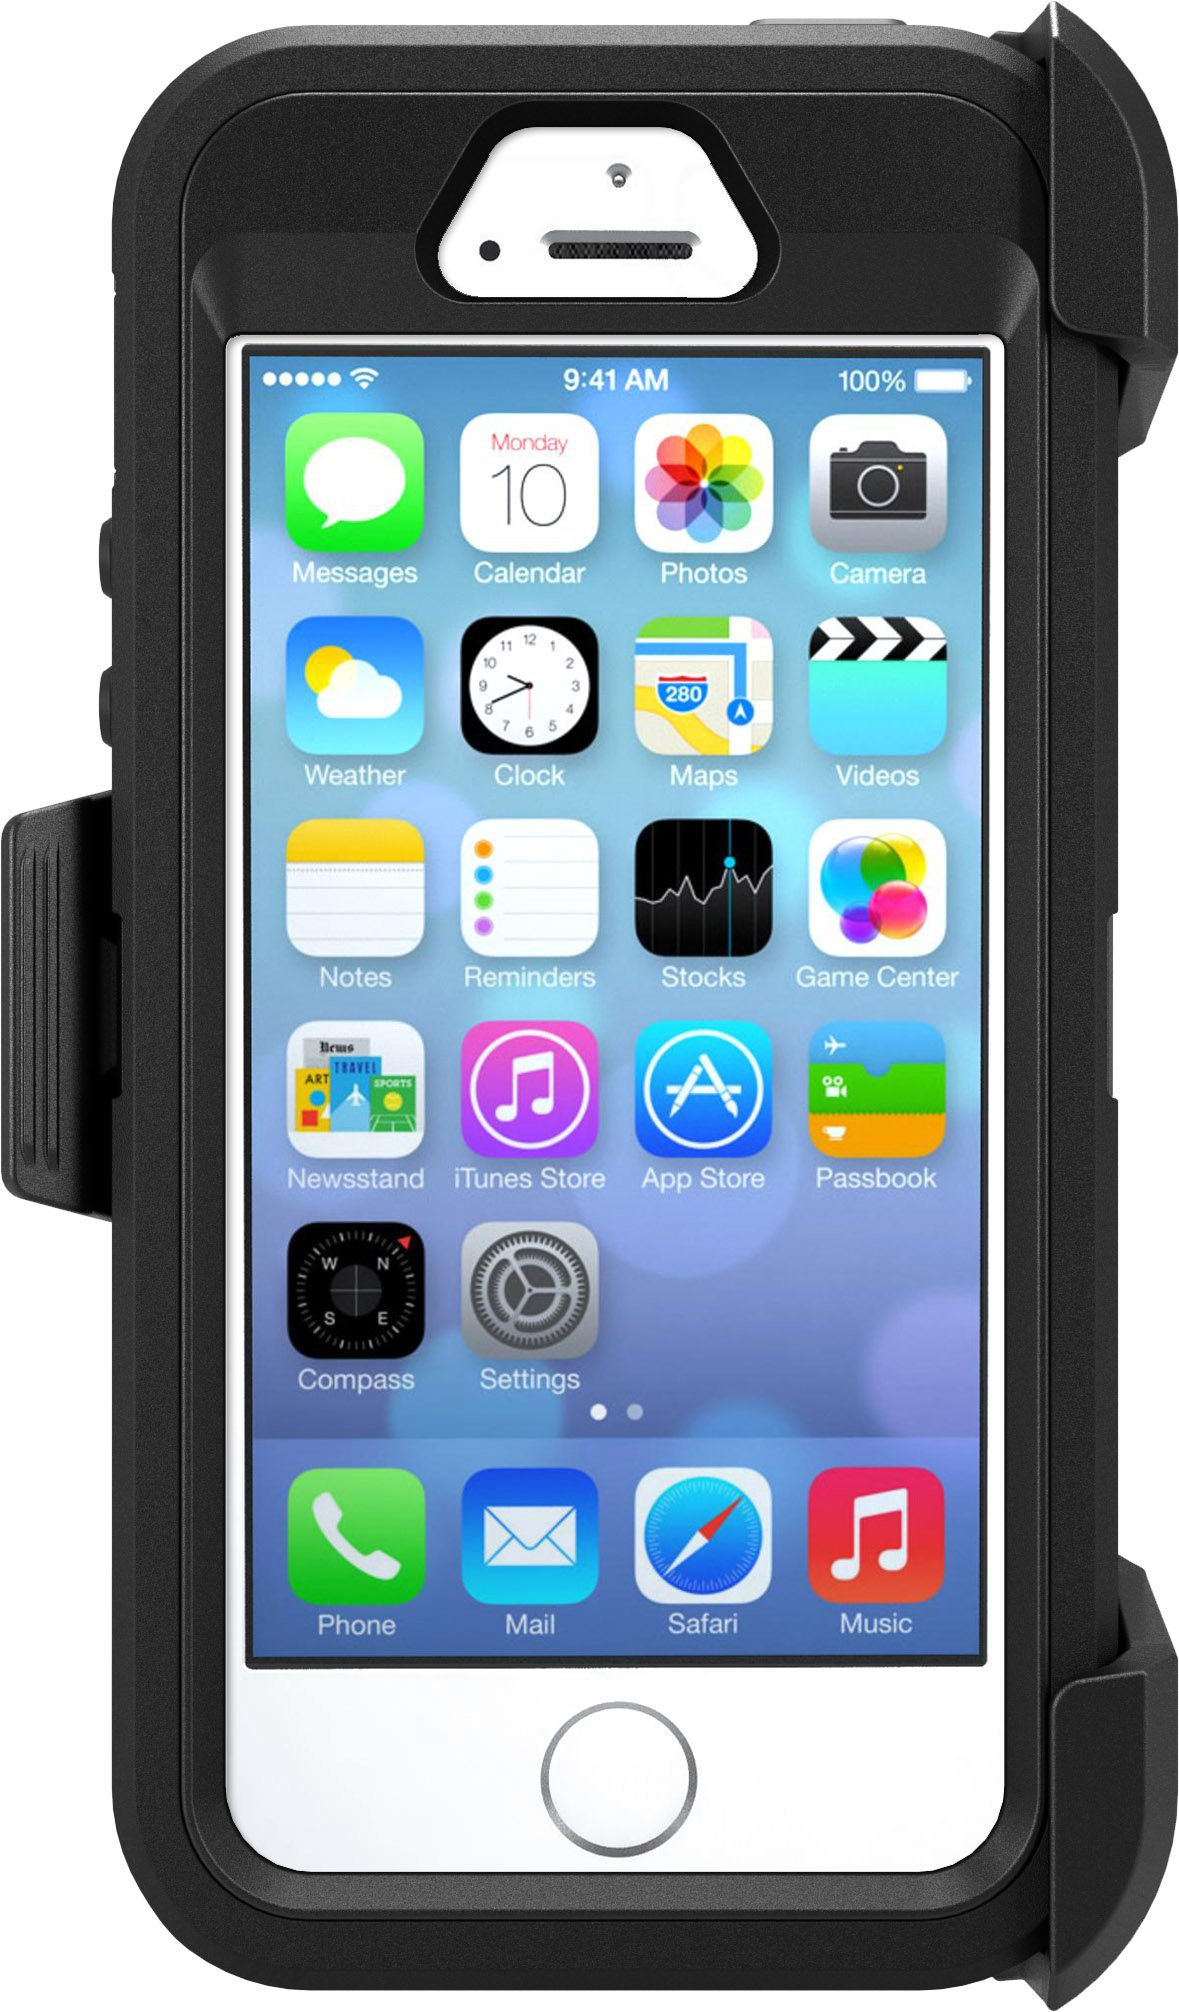 OtterBox Defender Series Case for iPhone 5/5s/SE - Black - Frustration Free Packaging by OtterBox (Image #5)